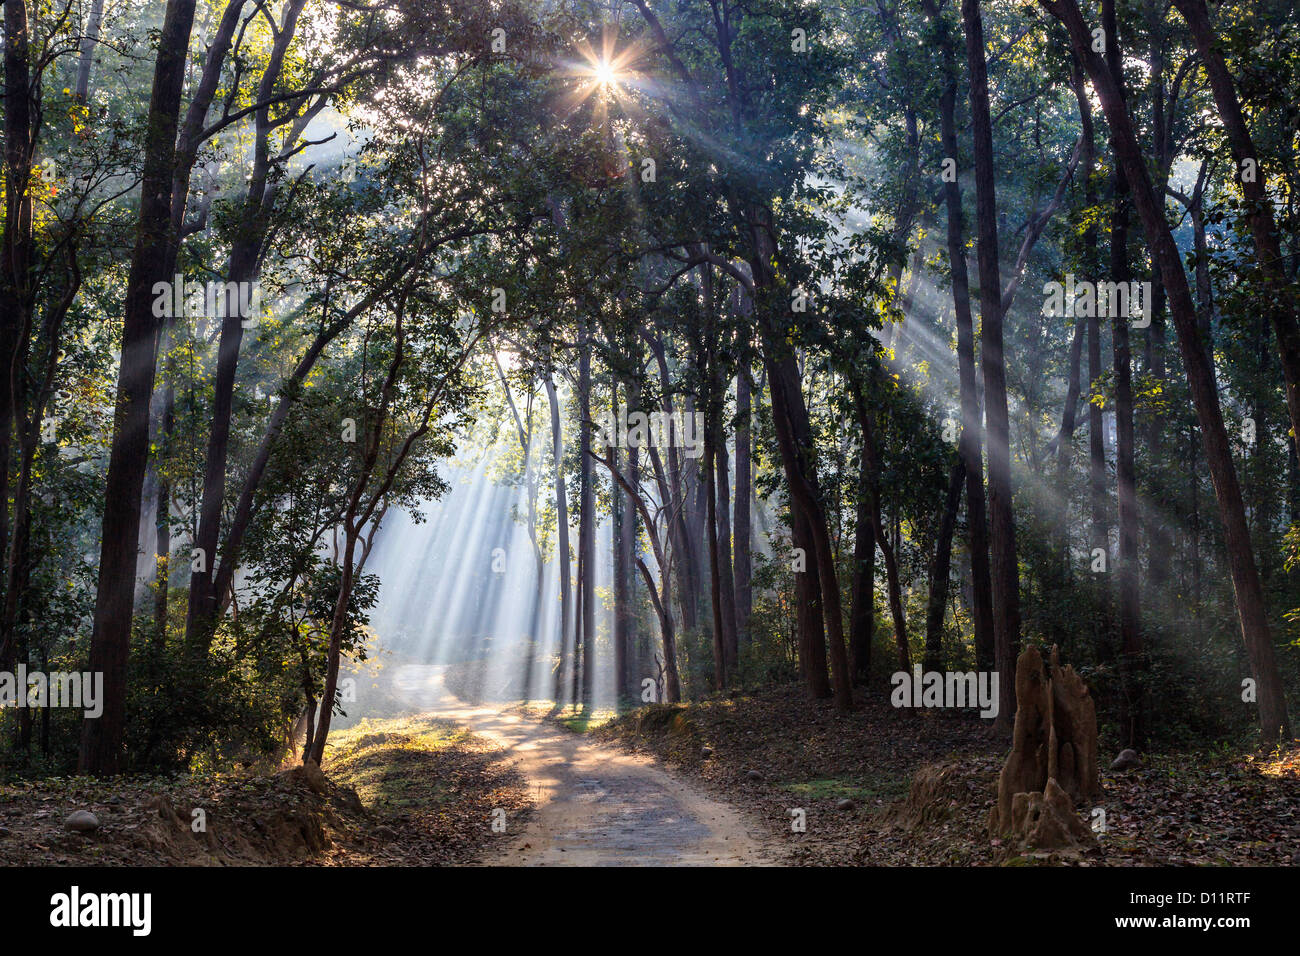 India, Uttarakhand, View of forest with shala trees at Jim Corbett National Park - Stock Image